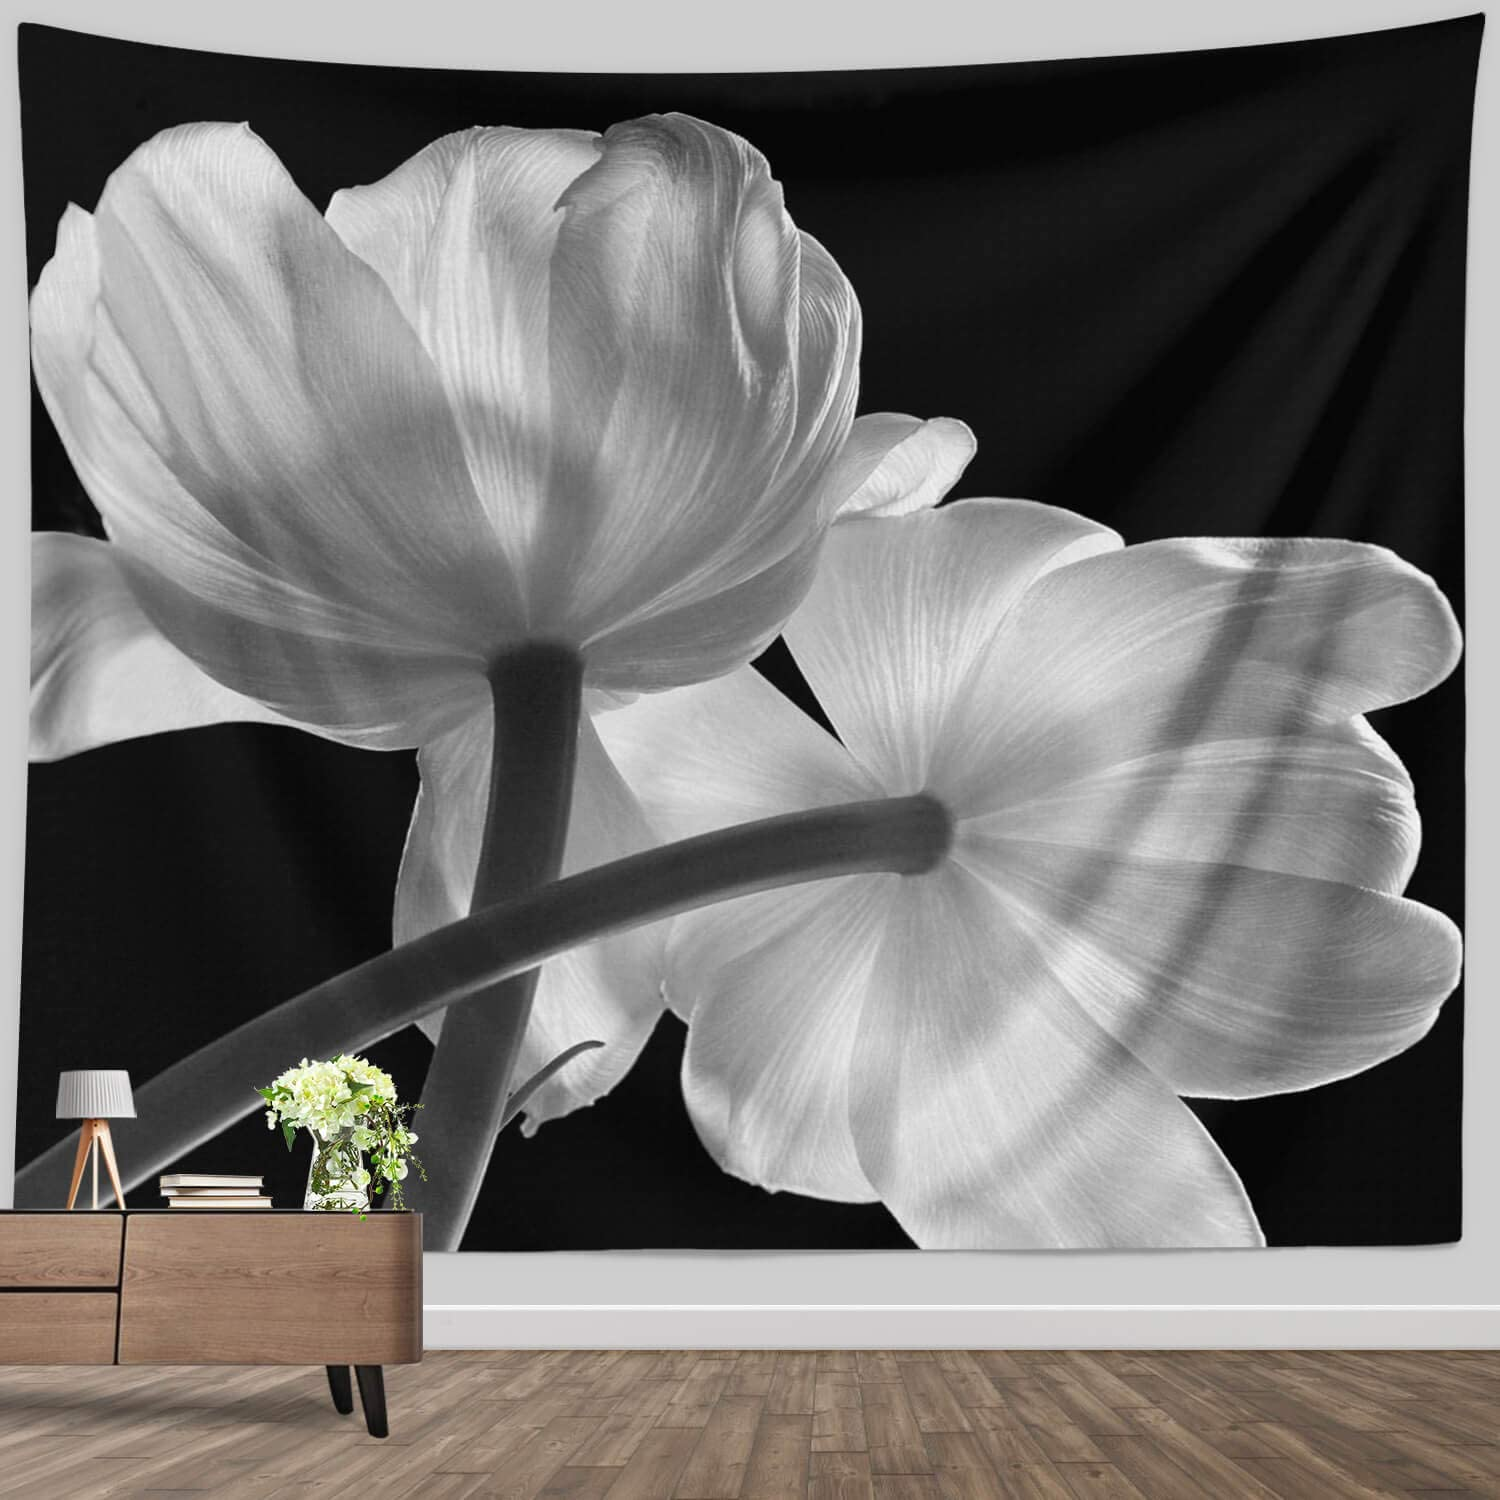 Floral Tapestry for Girls Bedroom, Modern White Flower on Black Backdrop Artwork Fabric Wall Hanging for Home Office Dorm Wall Decor Blanket Large, 60 x 80